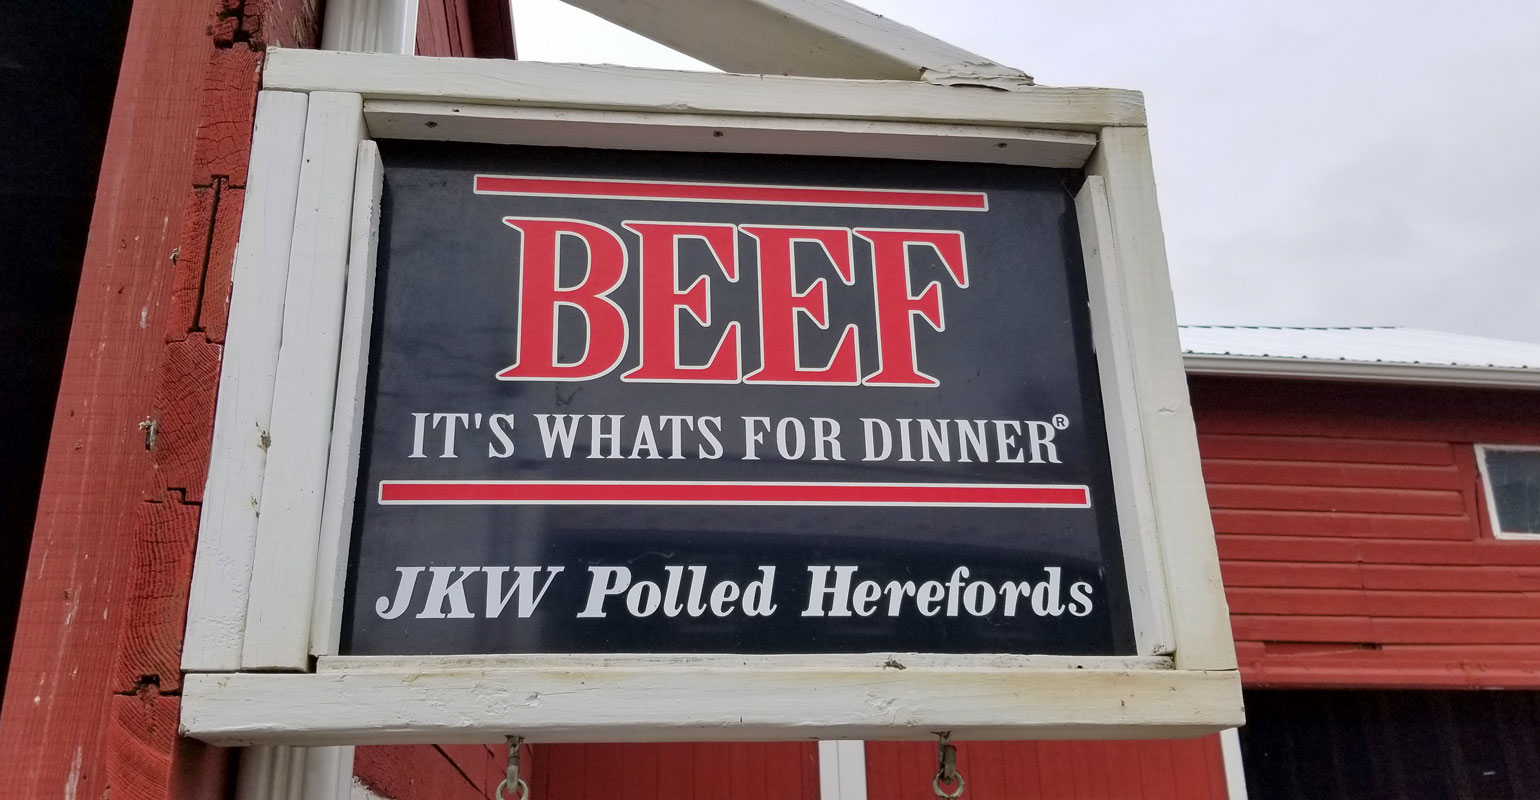 An outdoor sign at JKW Polled Herefords reads 'Beef, it's what's for dinner'